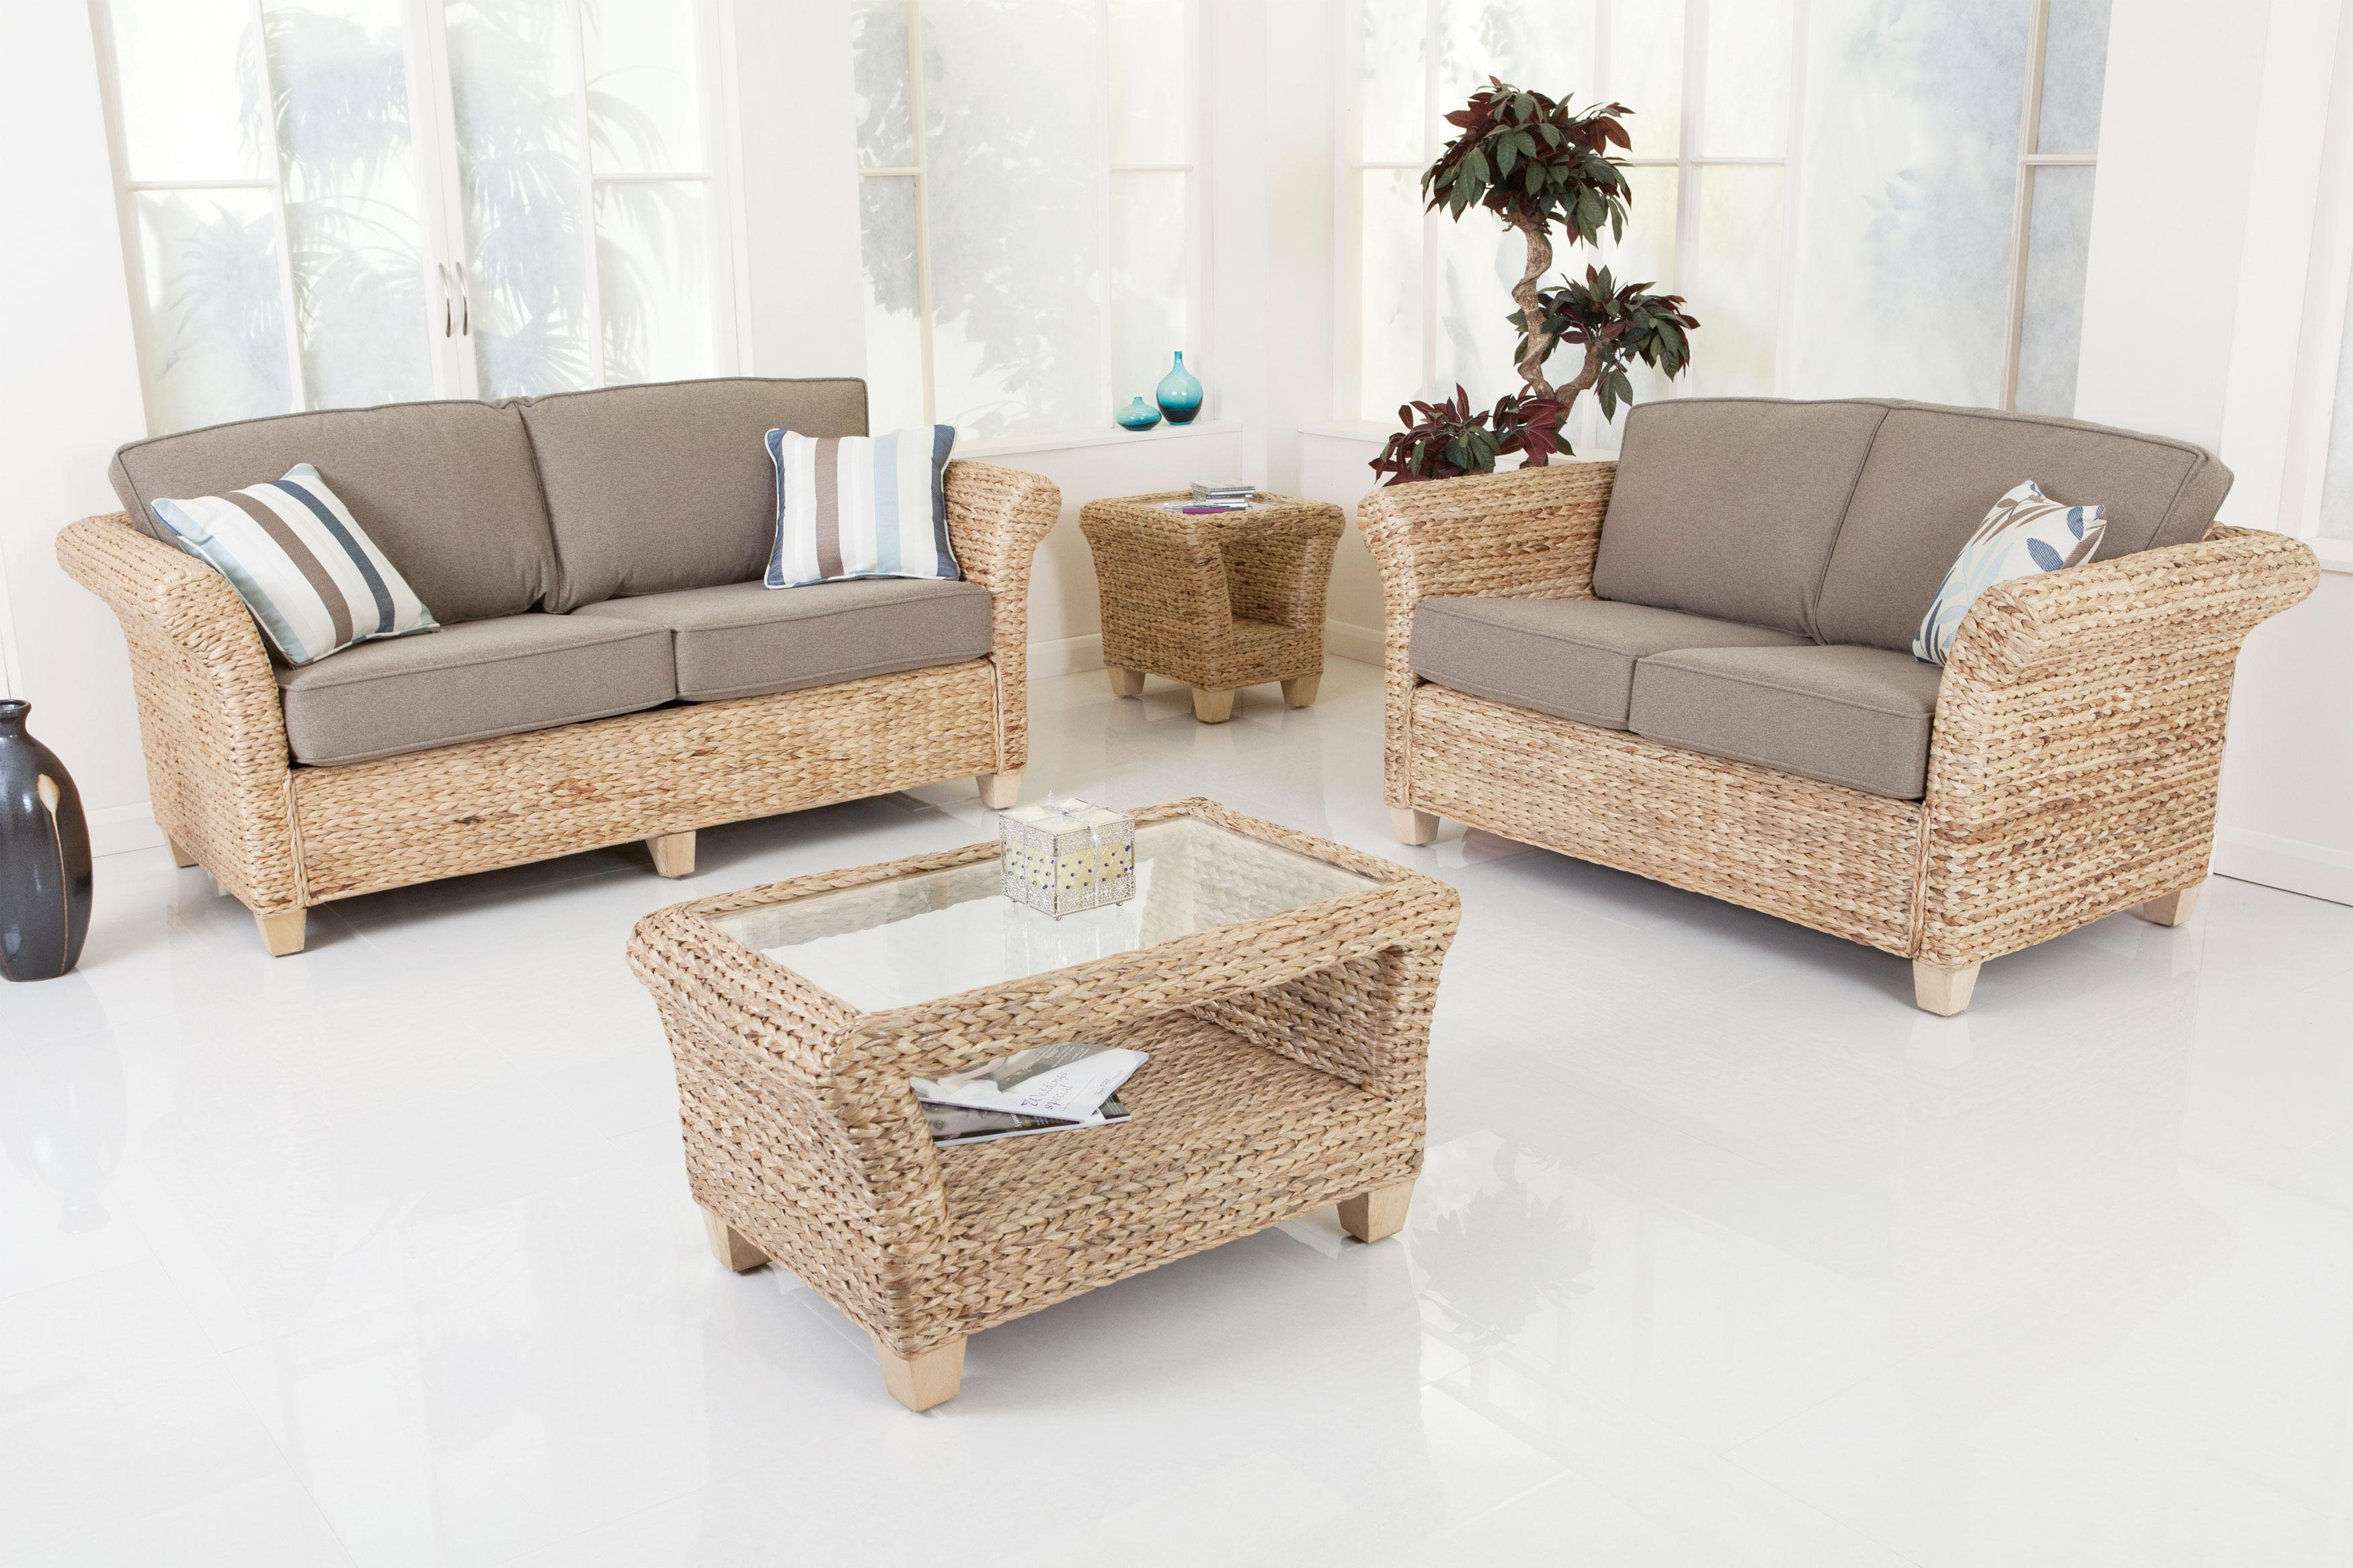 Welcome To Nature Cane And Wood Furniture Works | Cane Furniture Throughout Cane Sofas (Image 20 of 20)